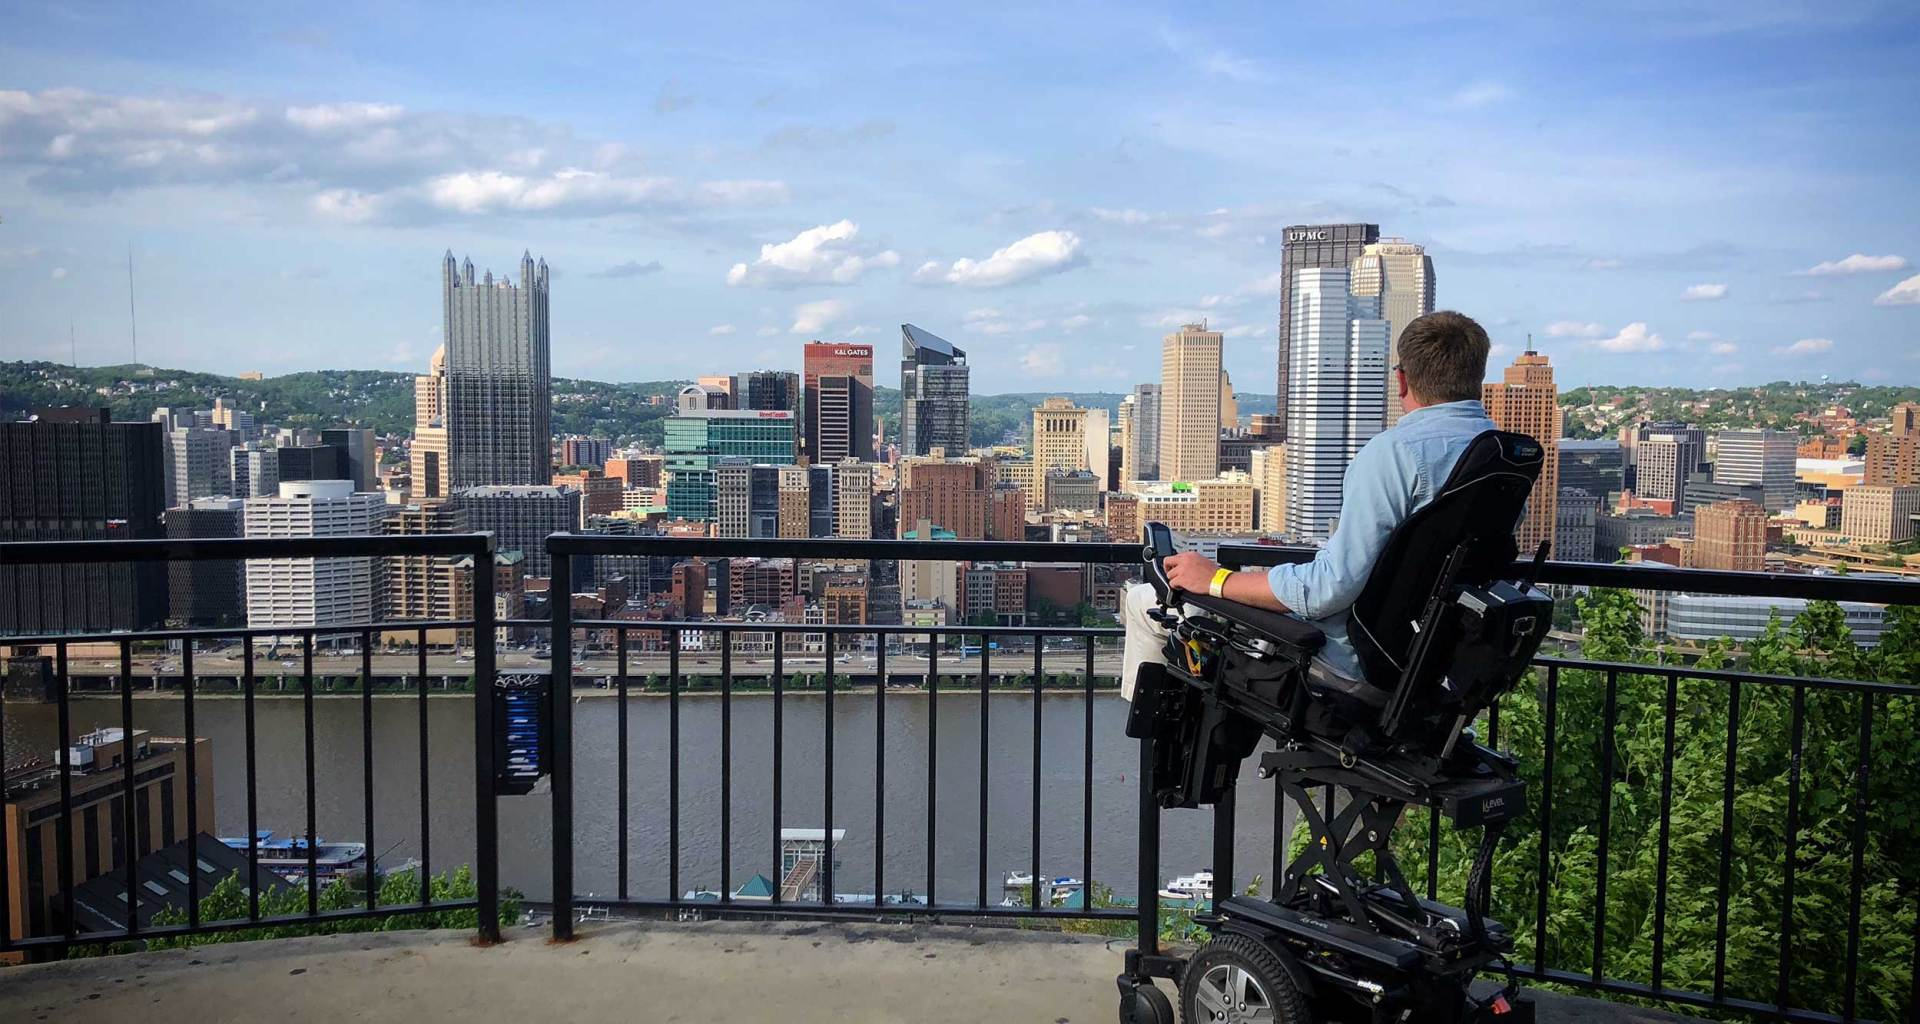 Power wheelchair in front of city skyline.